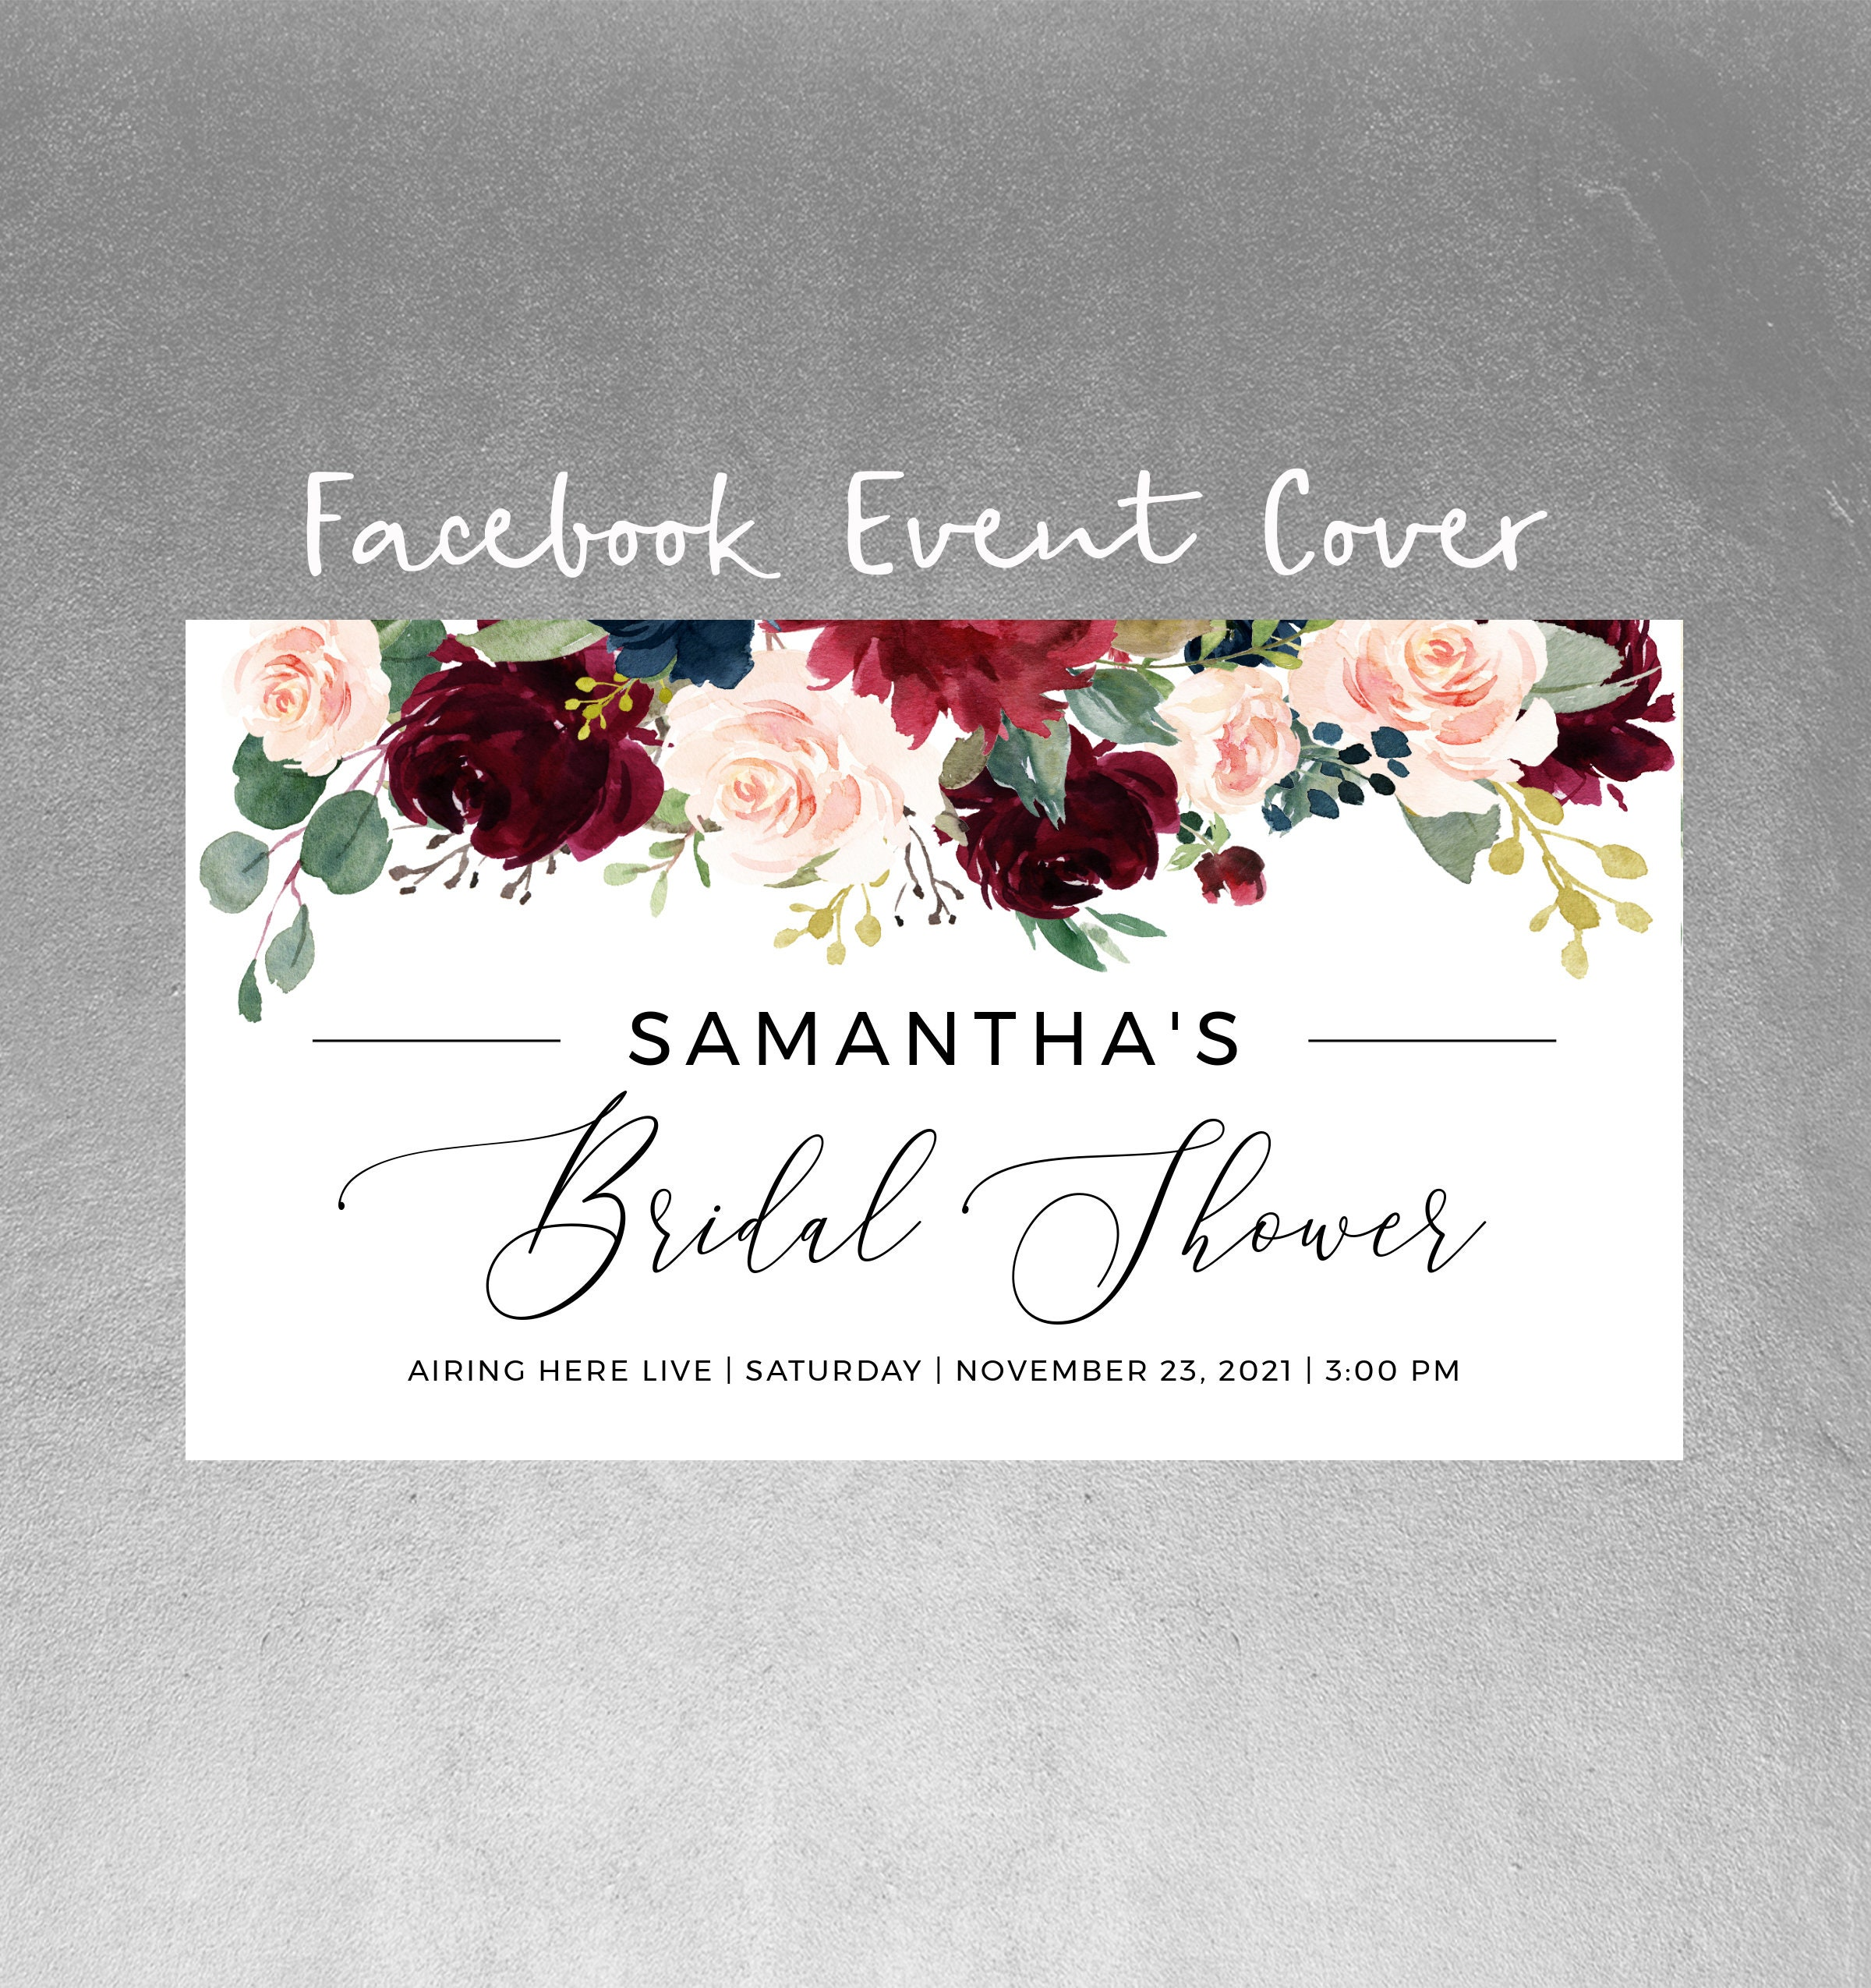 Facebook Event Cover Template, Bridal Shower Editable Facebook Banner,  Birthday, Baby Shower, Any Event, Instant Download, Templett, POM For Bridal Shower Banner Template